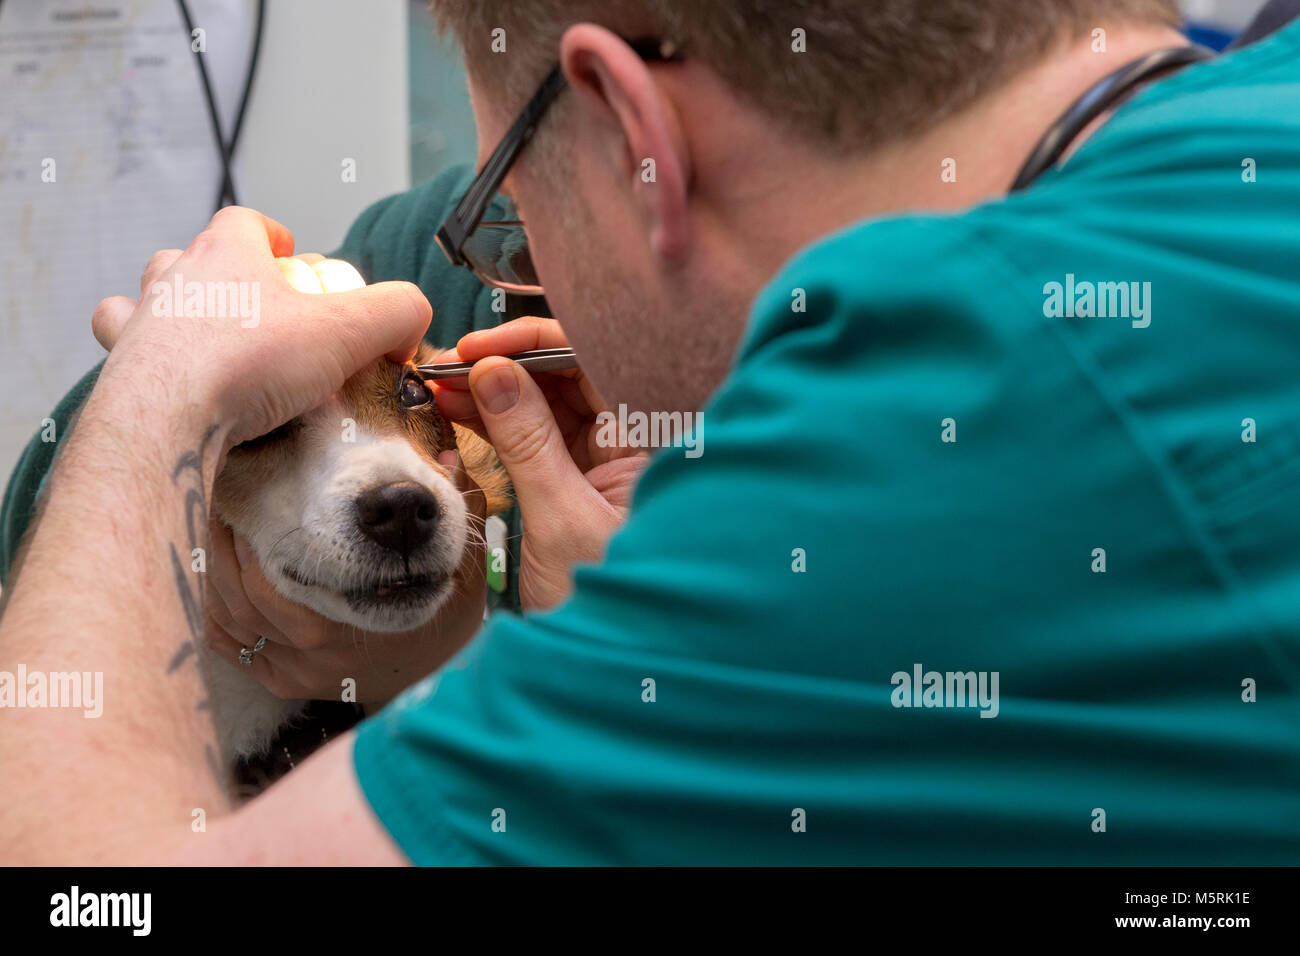 Veterinary nurse removes an object from the eye of a dog in a veterinary surgery Stock Photo